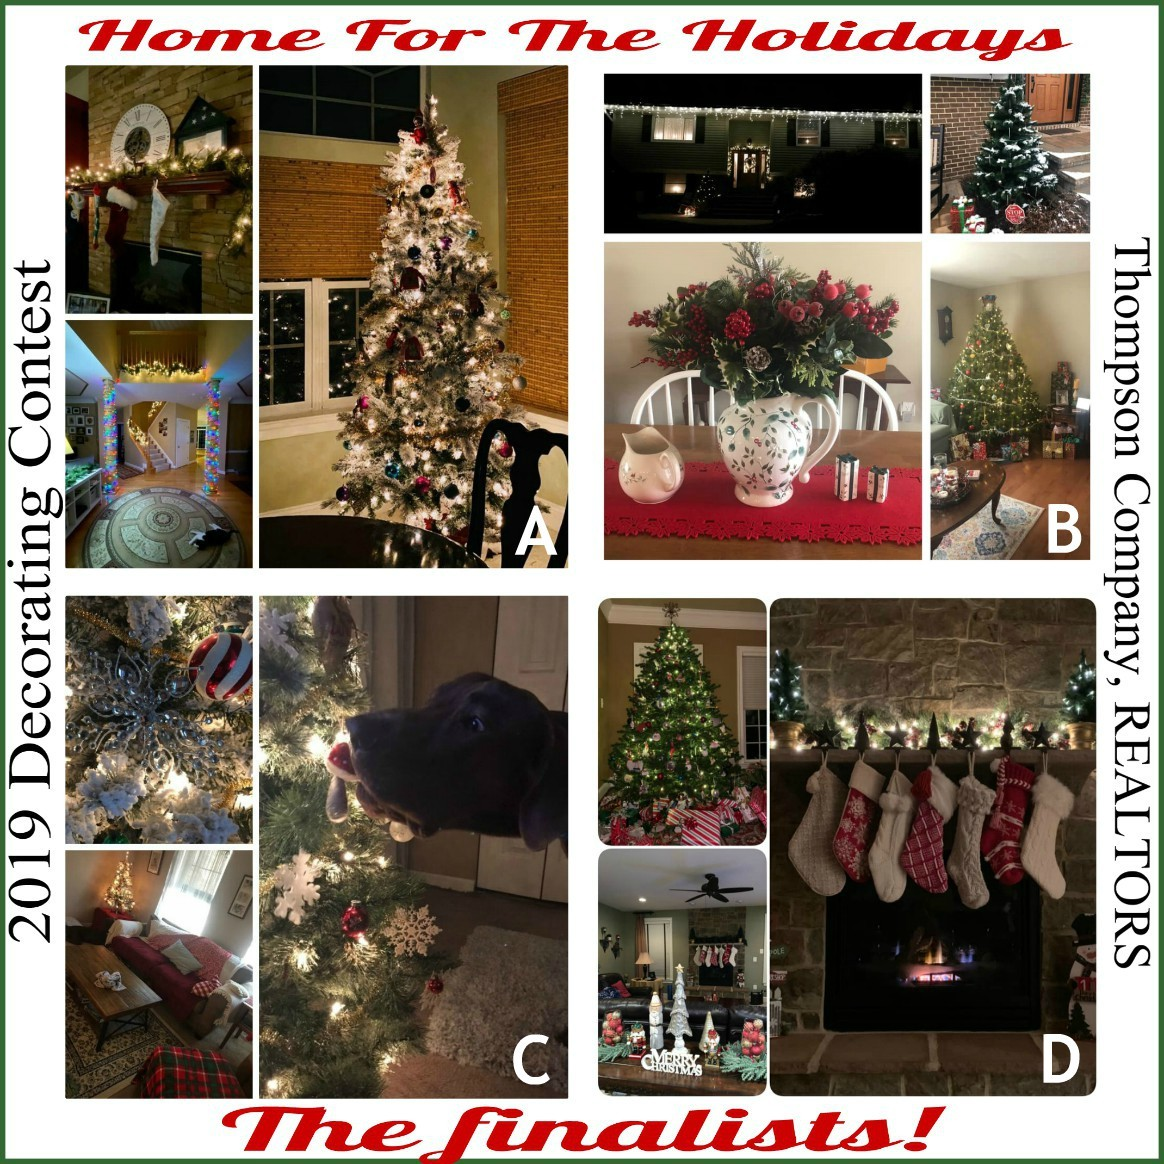 Thompson Company Holiday Decorating Contest: the finalists